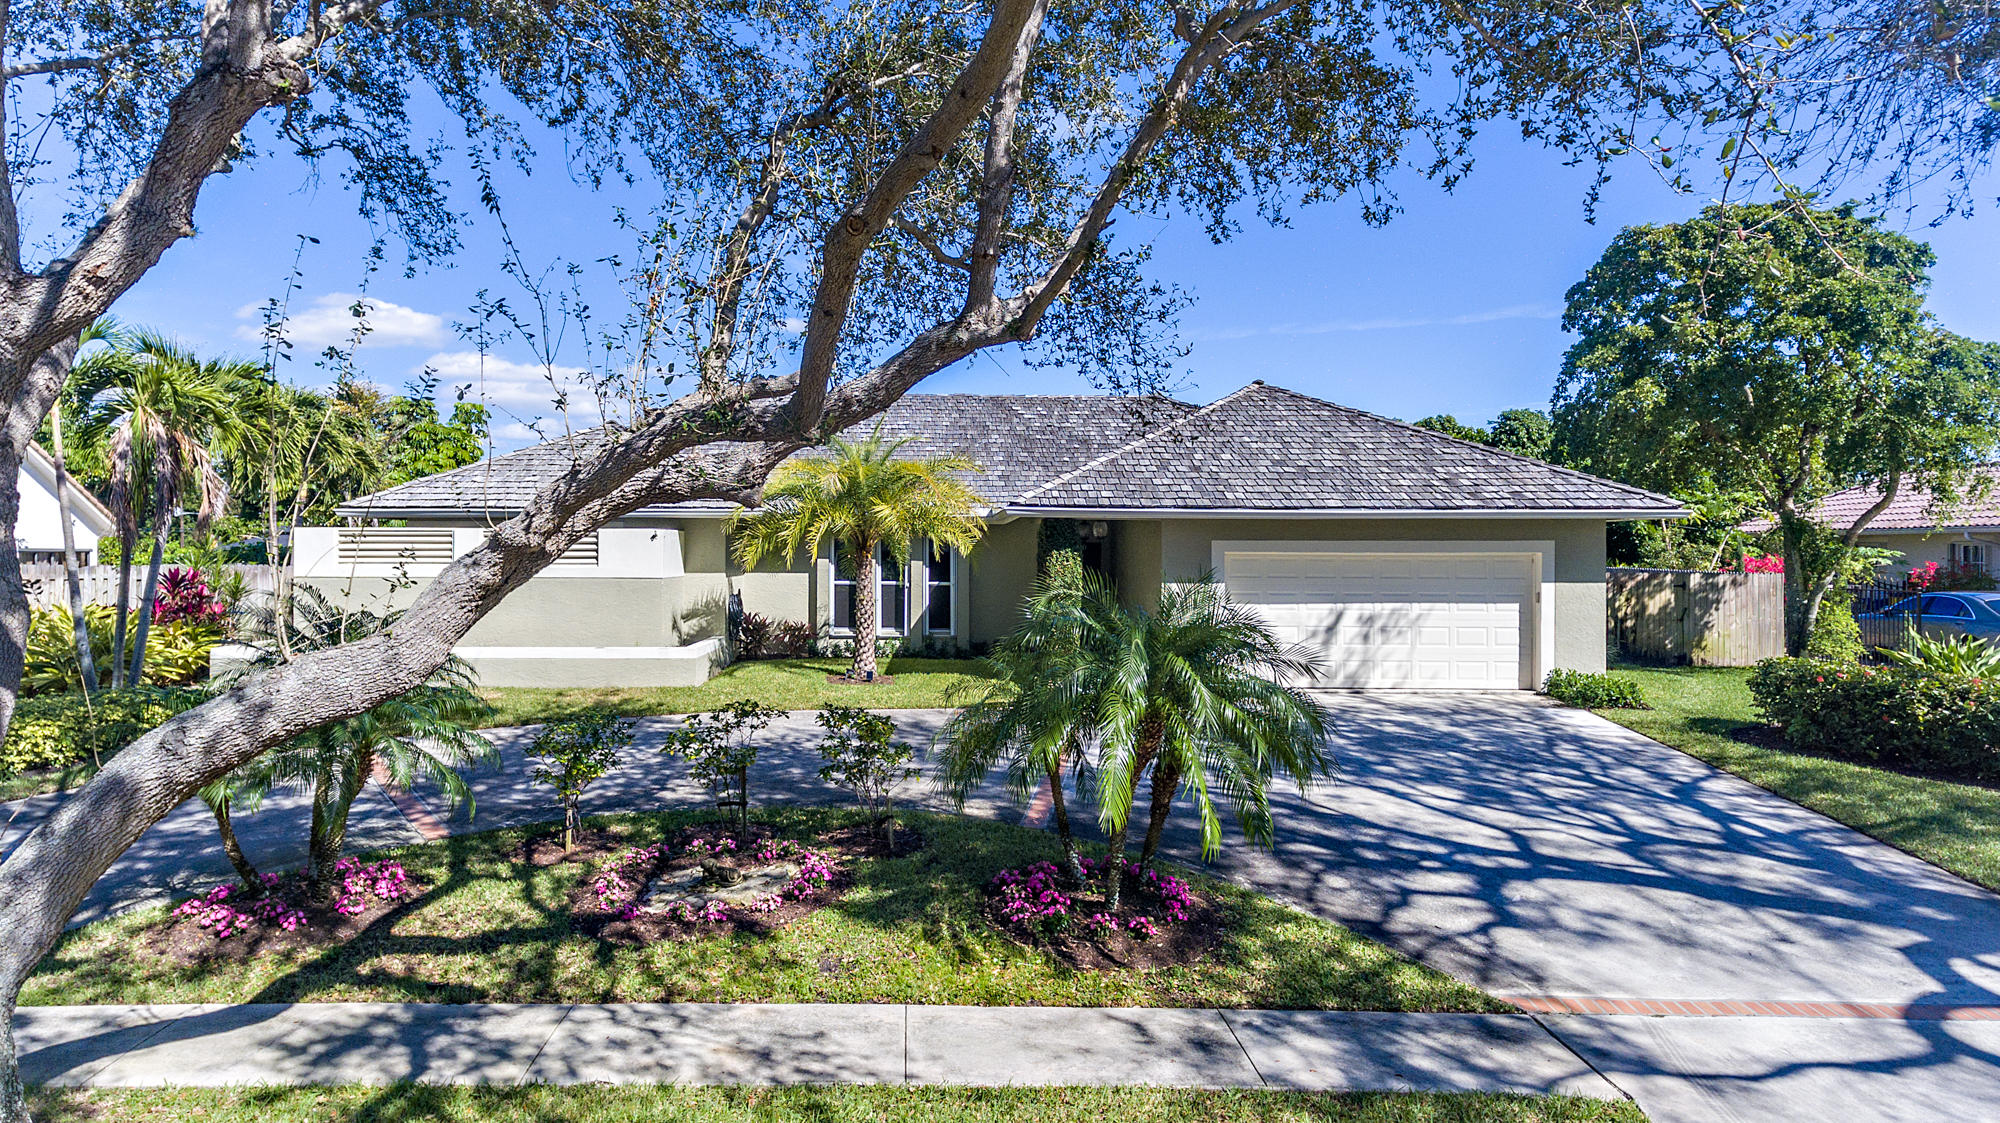 PRESIDENT COUNTRY CLUB HOMES FOR SALE